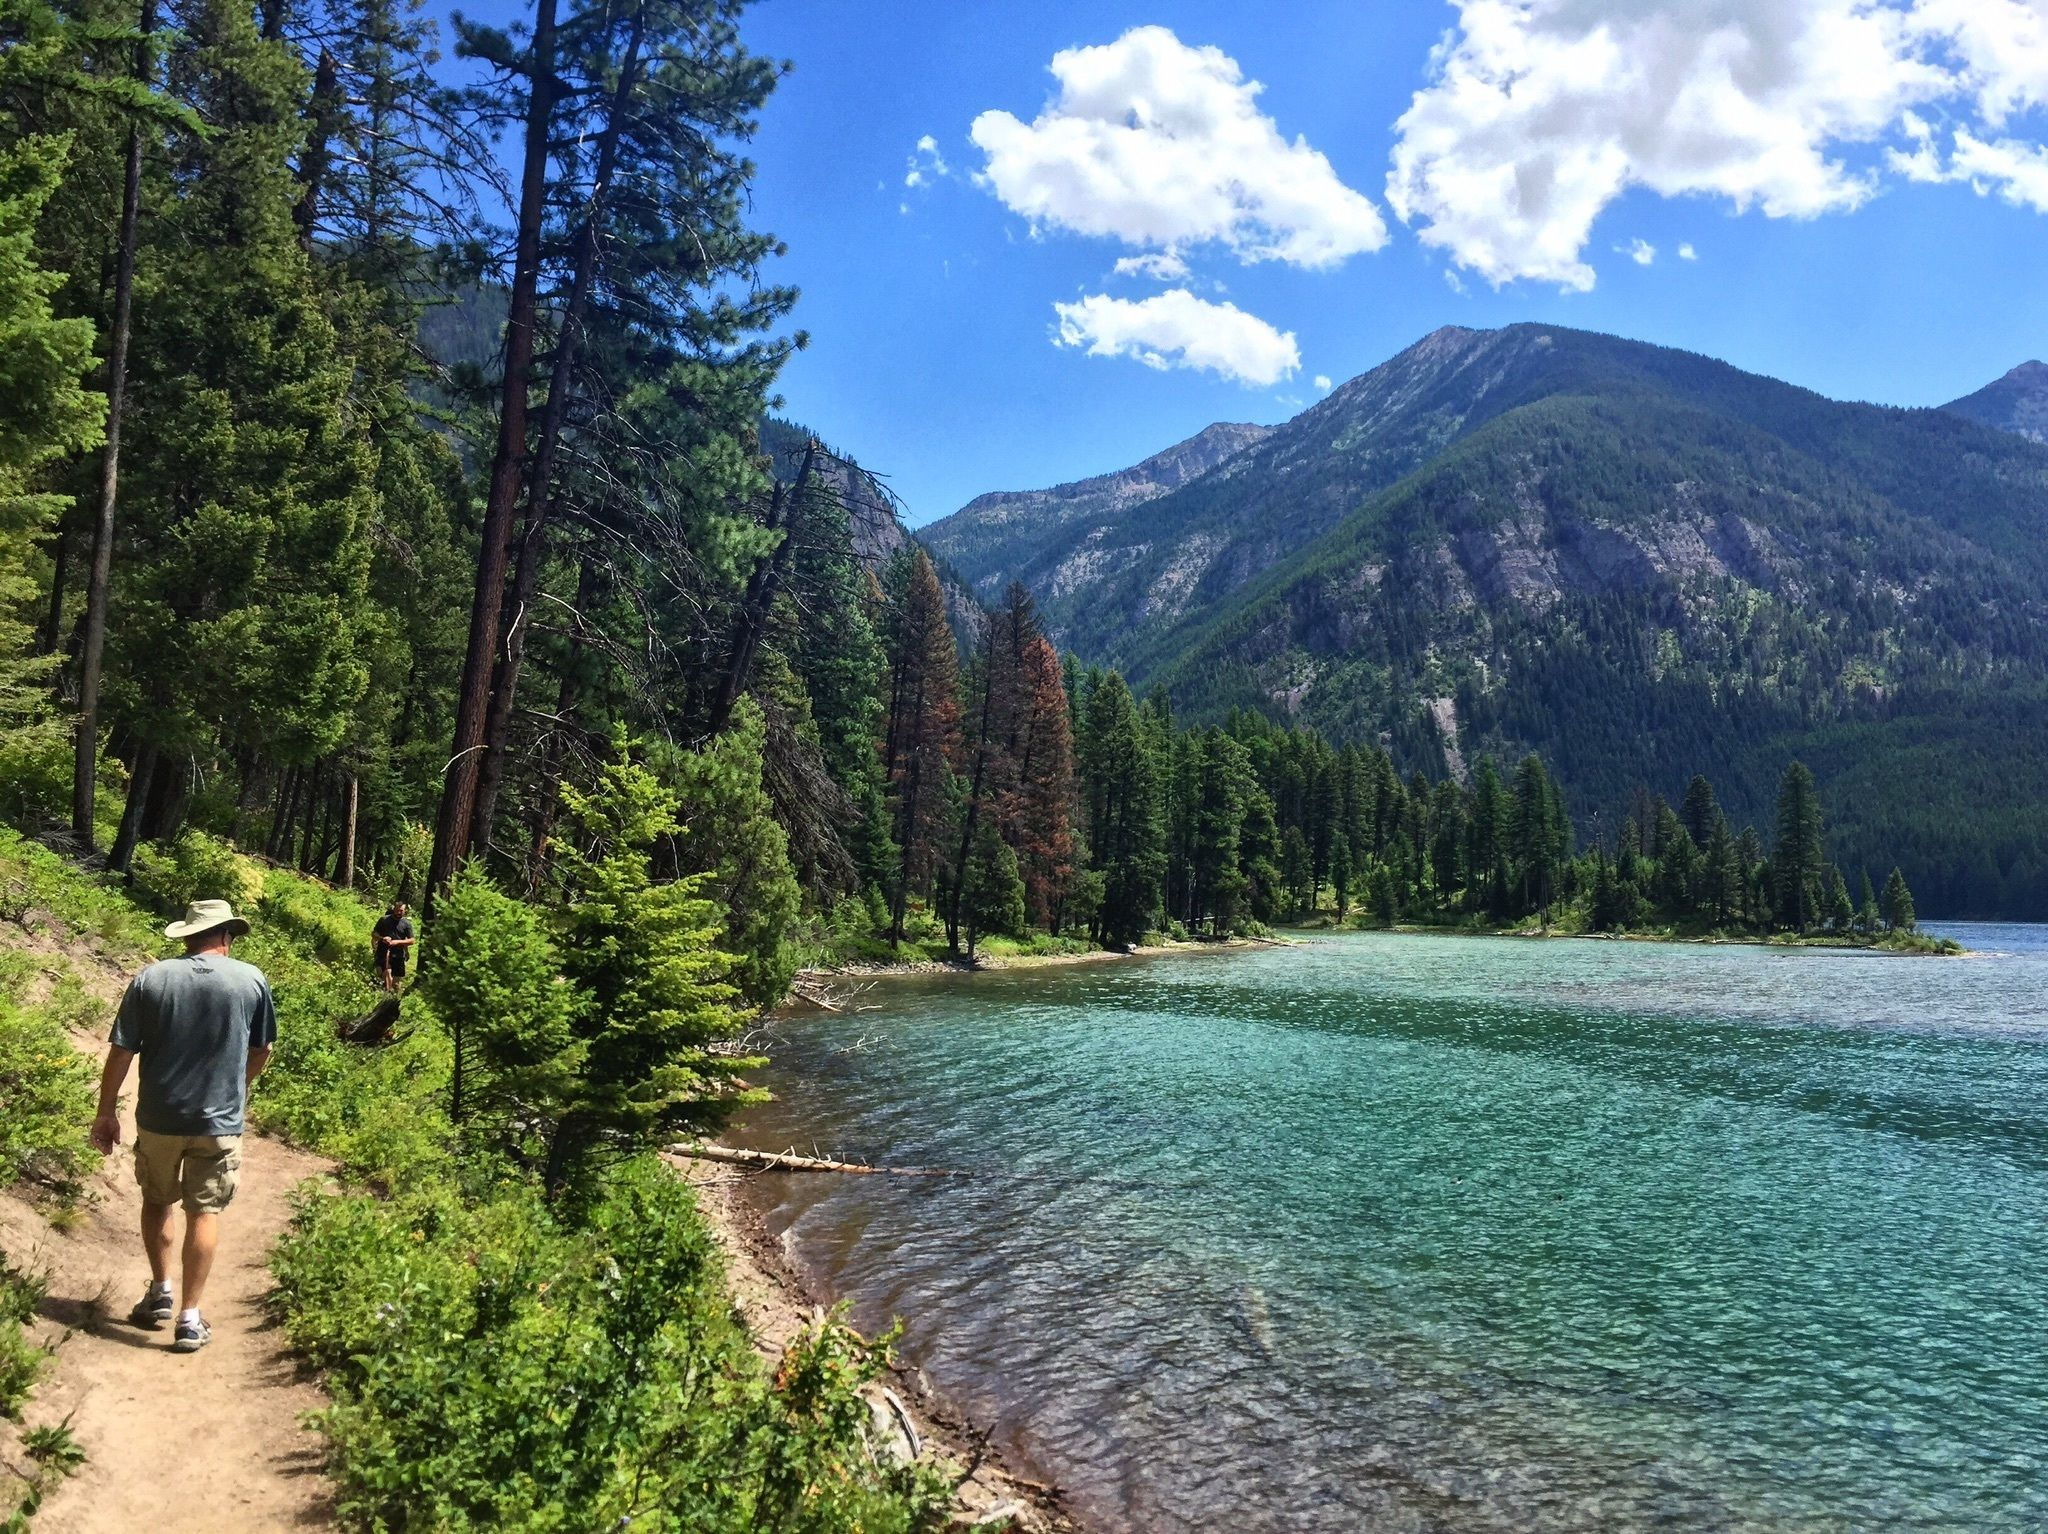 holland lake and falls trail in montana is a beautiful hike